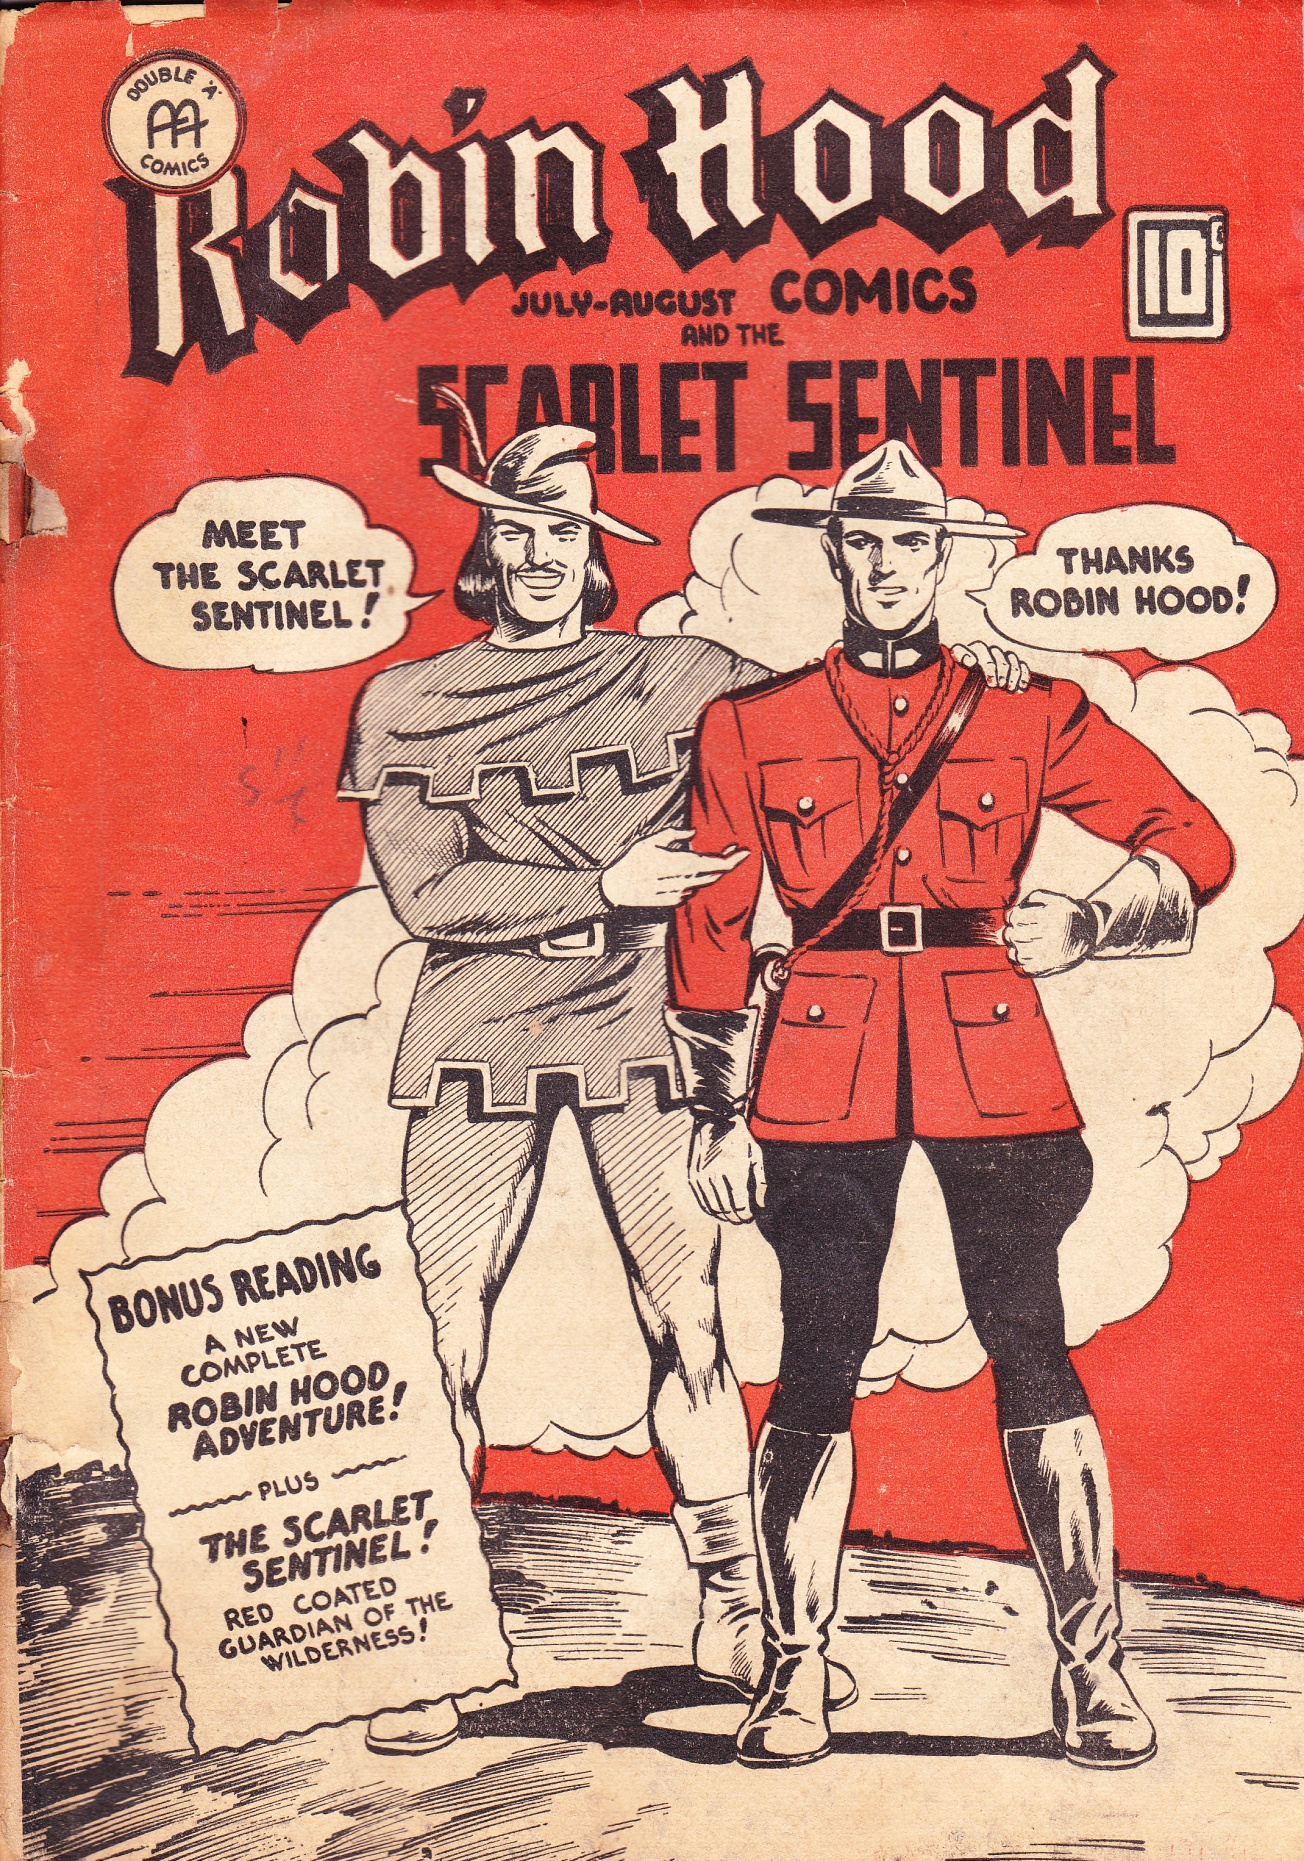 C:\Users\Robert\Documents\CARTOONING ILLUSTRATION ANIMATION\IMAGE COMIC BOOK COVERS\ROBIN HOOD COMICS 2-3 July august 1943 fc.jpg